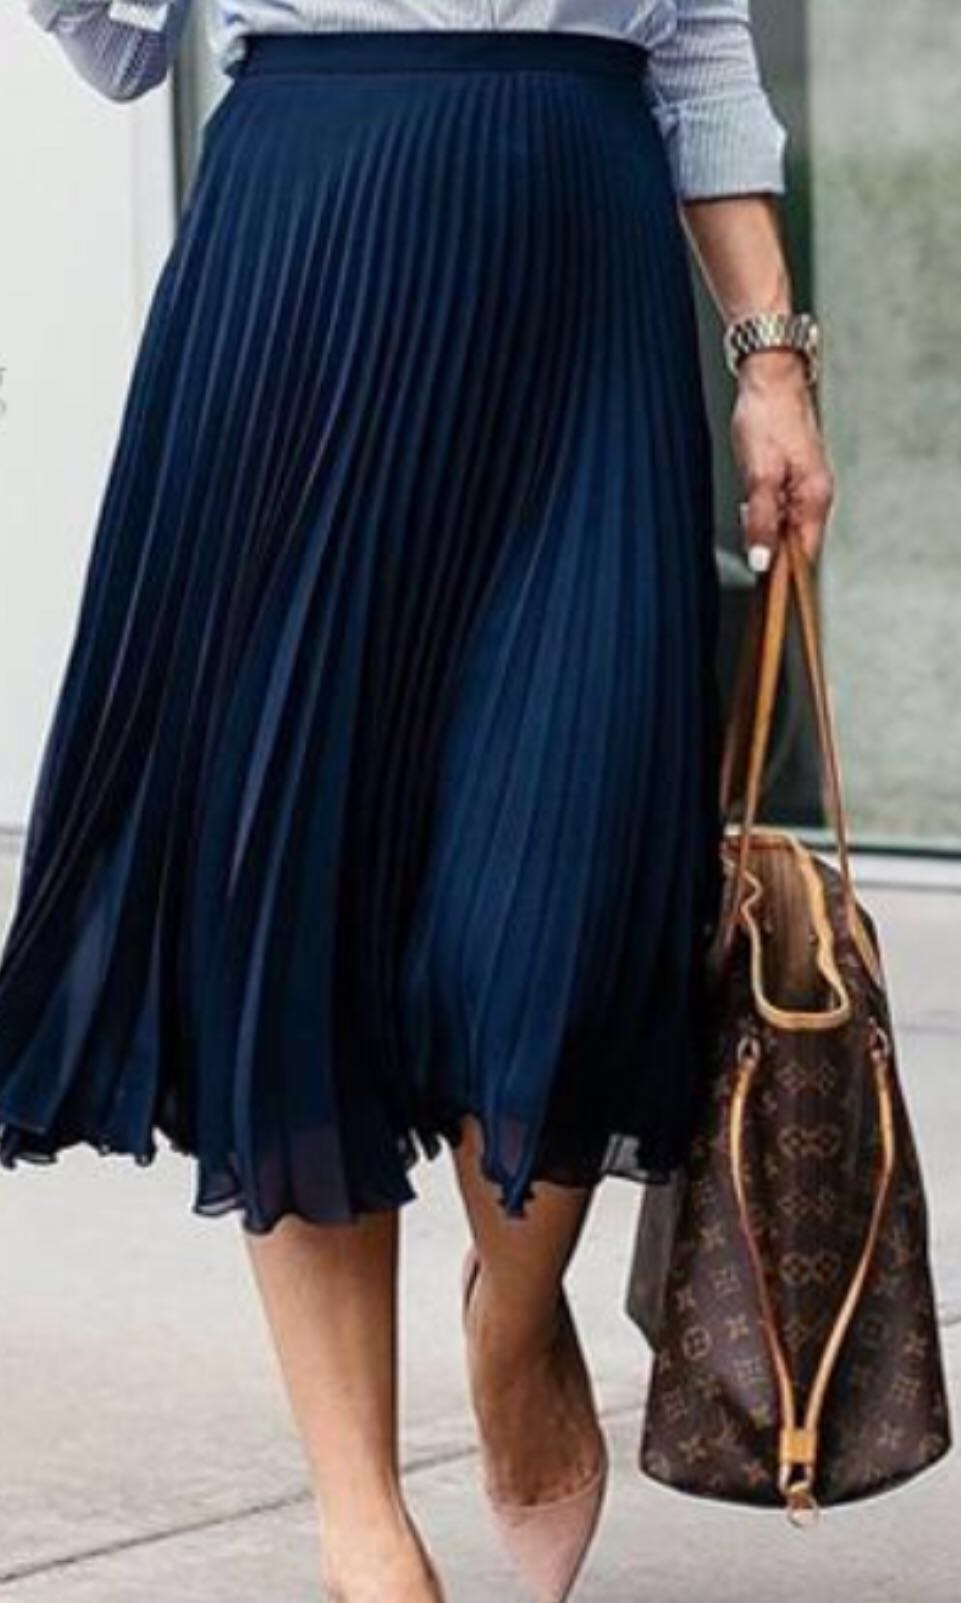 06828a7578 Pleated Midi Skirt Uniqlo in navy blue , Women's Fashion, Clothes, Pants,  Jeans & Shorts on Carousell